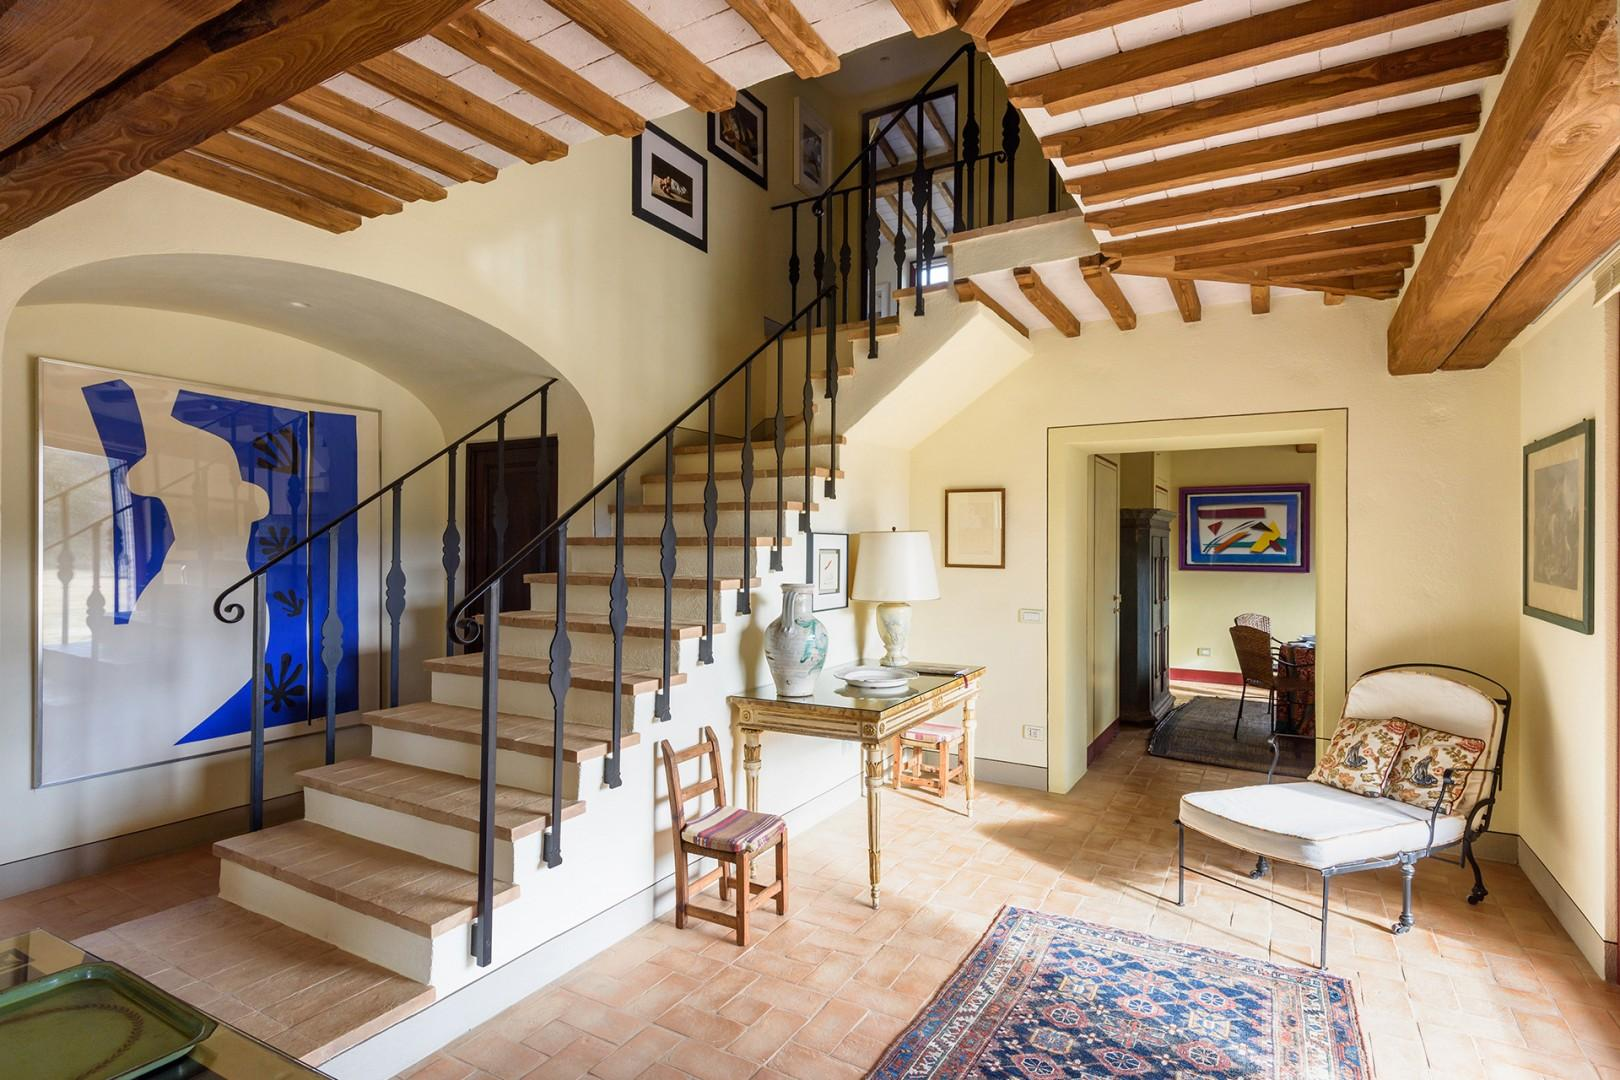 Welcoming entry with stairs leading up to the bedroom level.